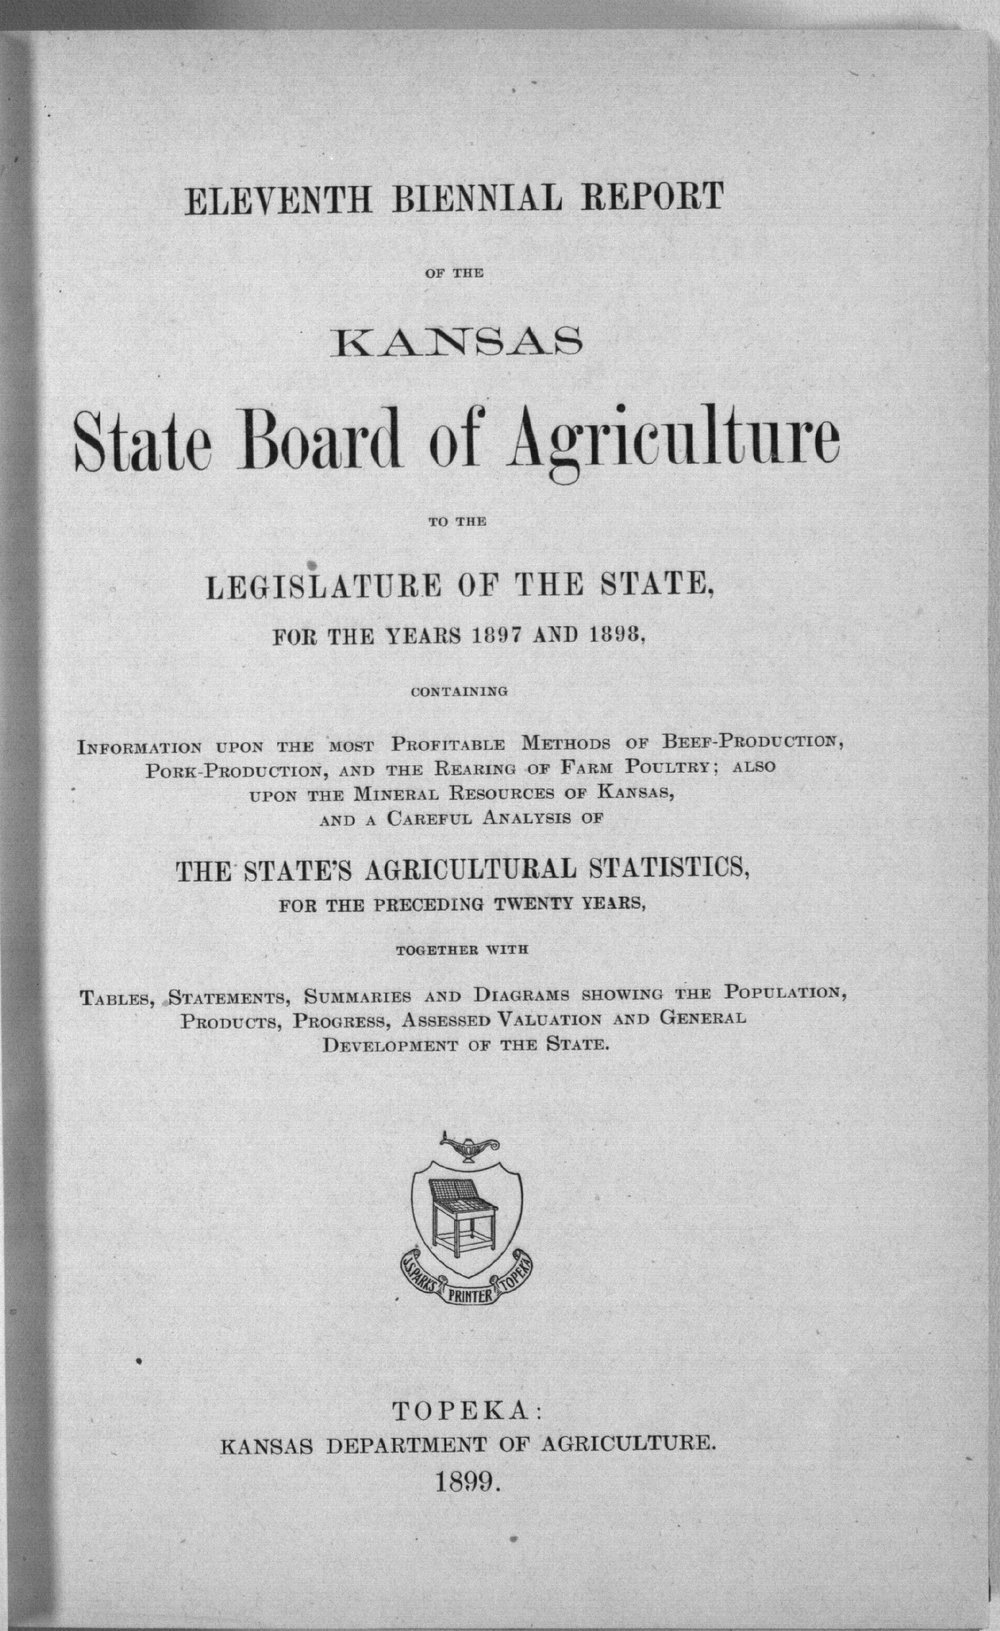 Eleventh biennial report of the Kansas State Board of Agriculture, 1897-98 - Title Page